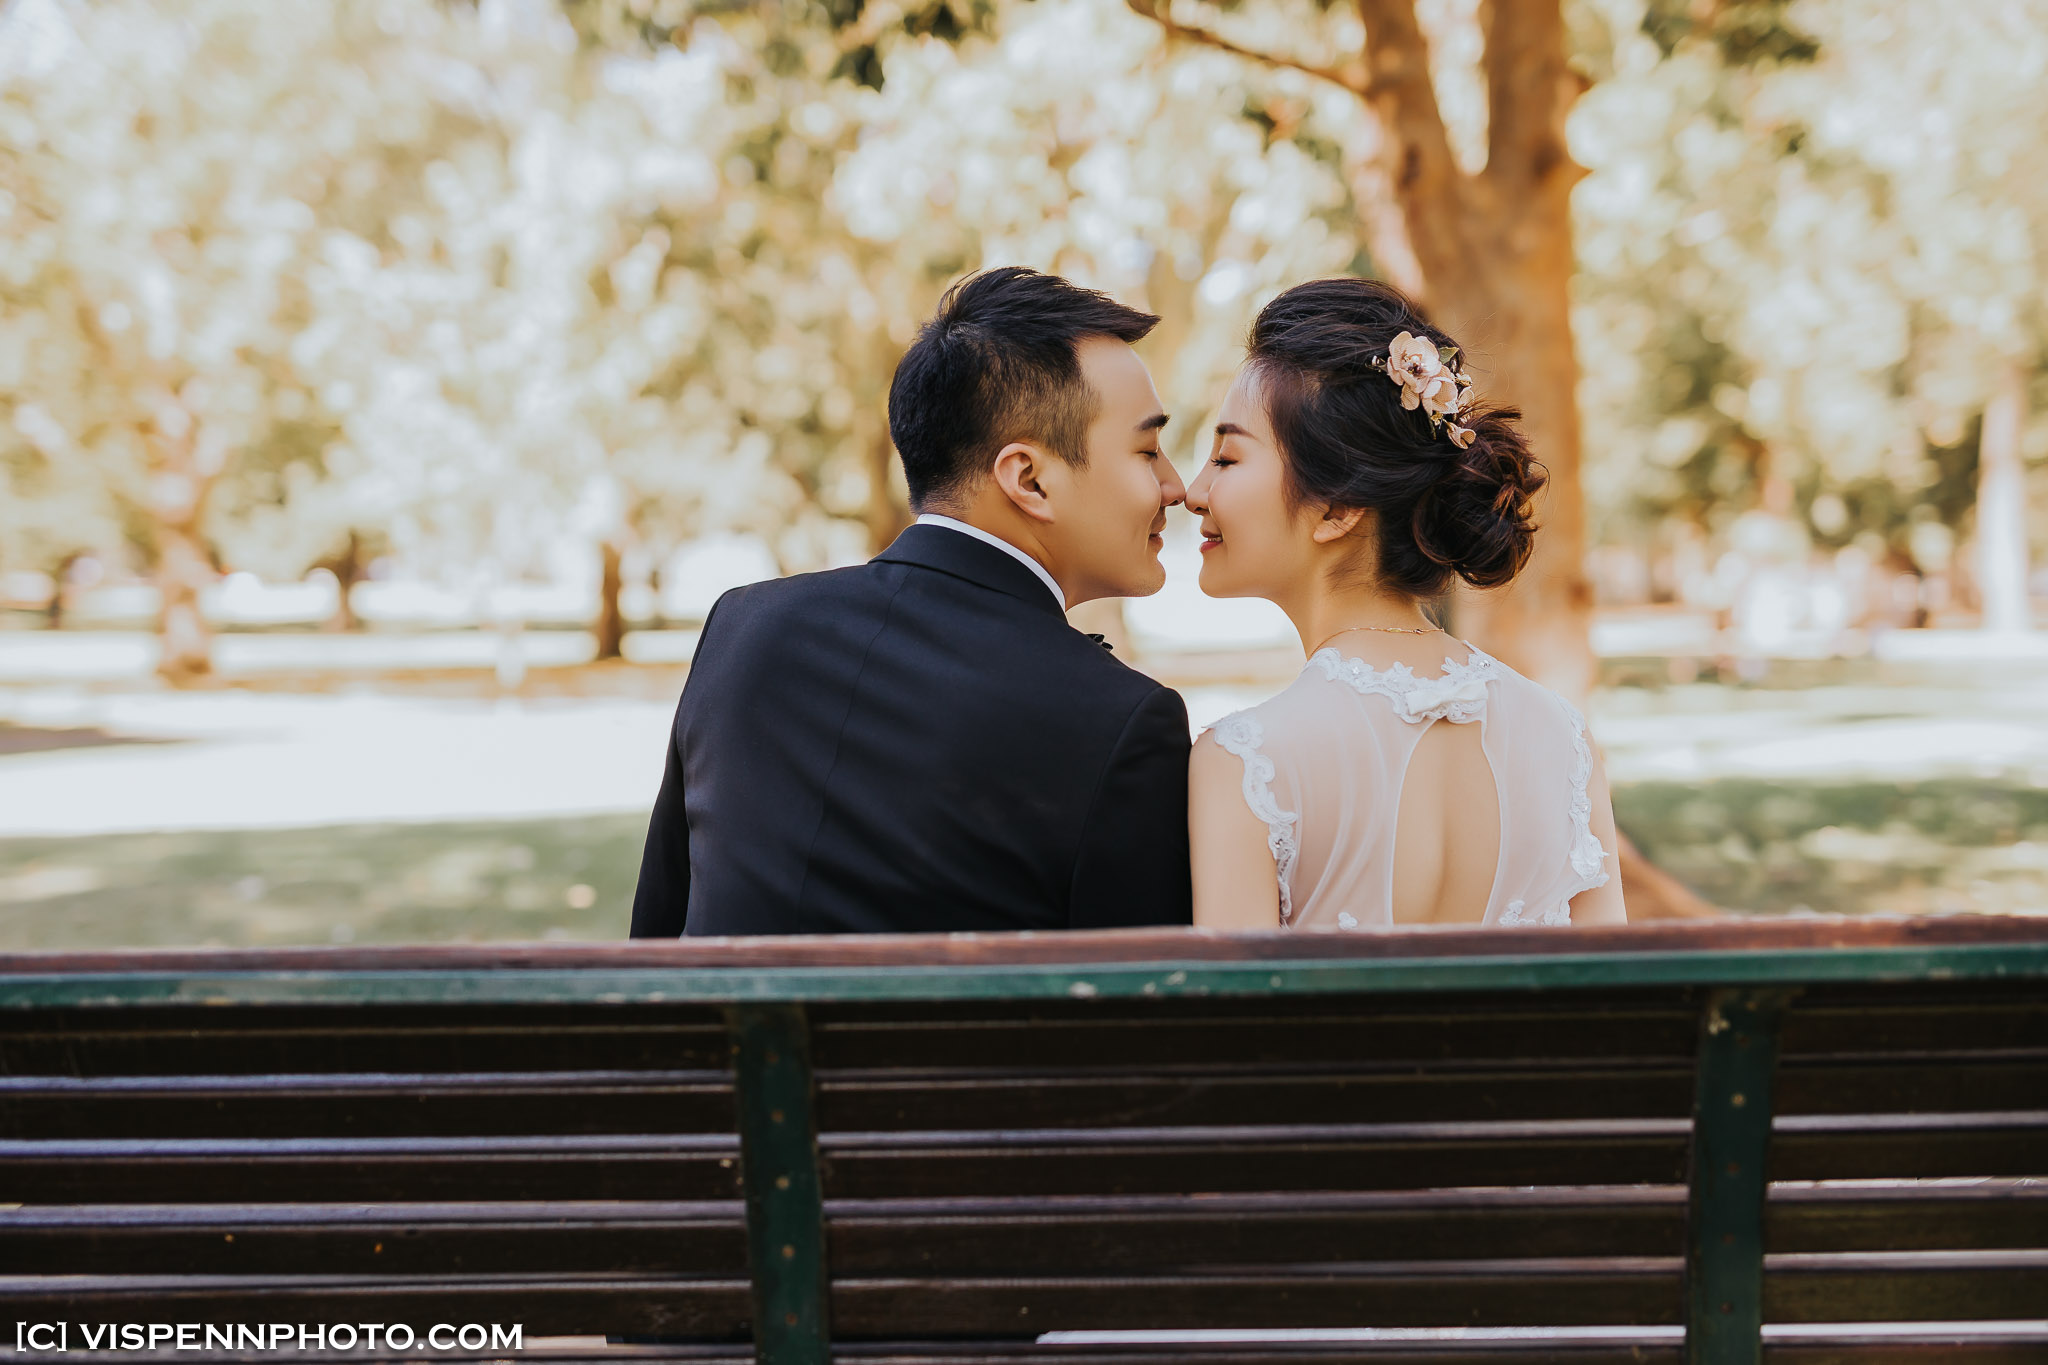 PRE WEDDING Photography Melbourne 5D5 8399